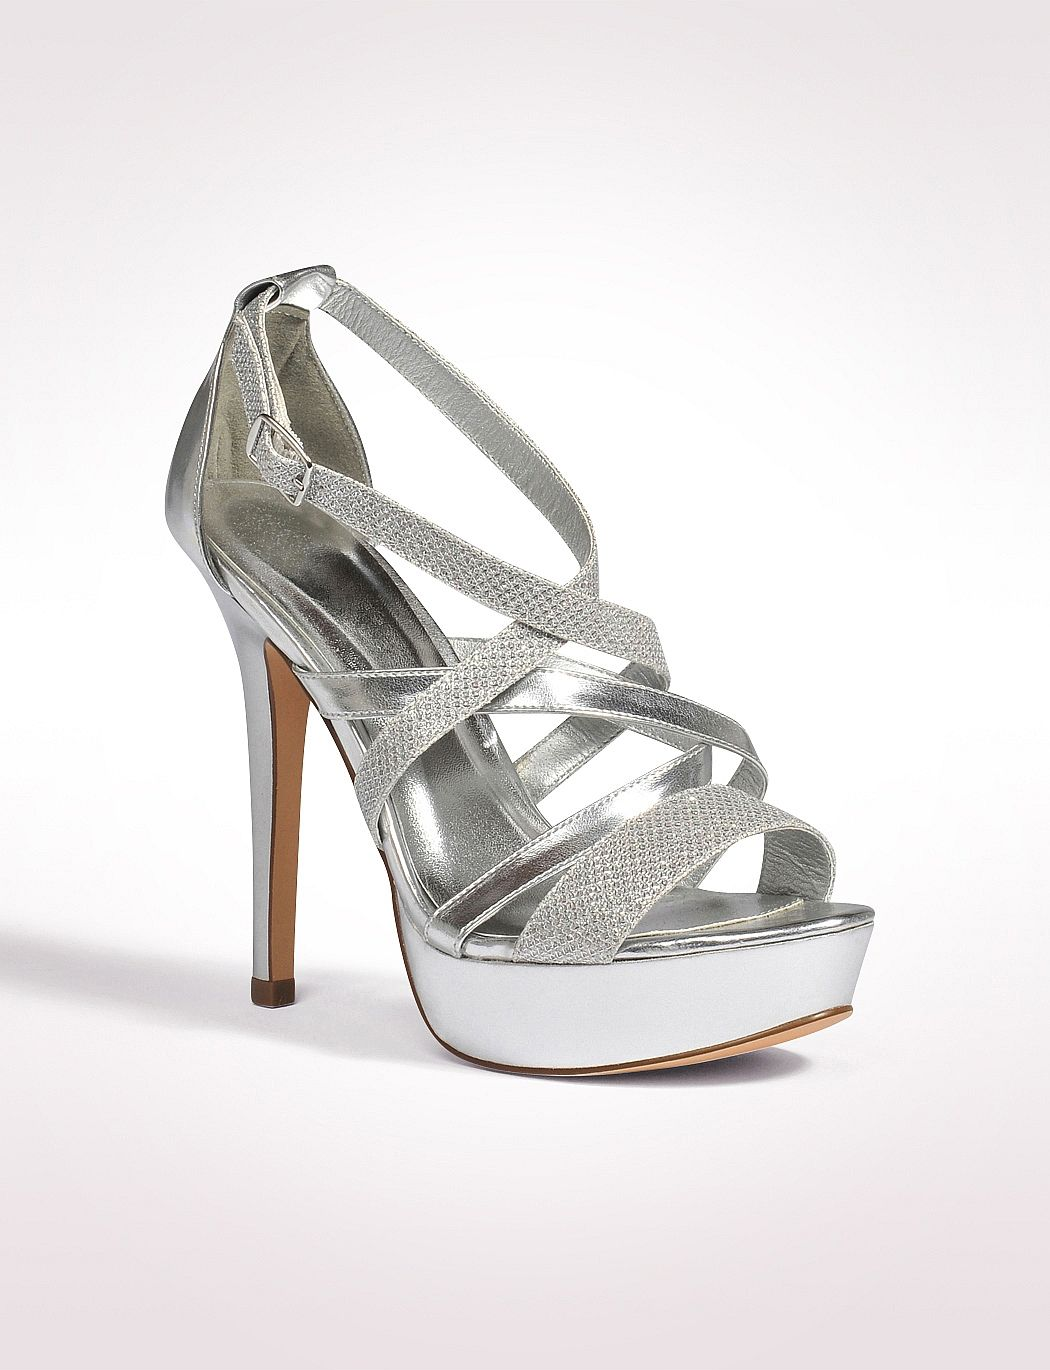 384880d2195 Love this silver shoe